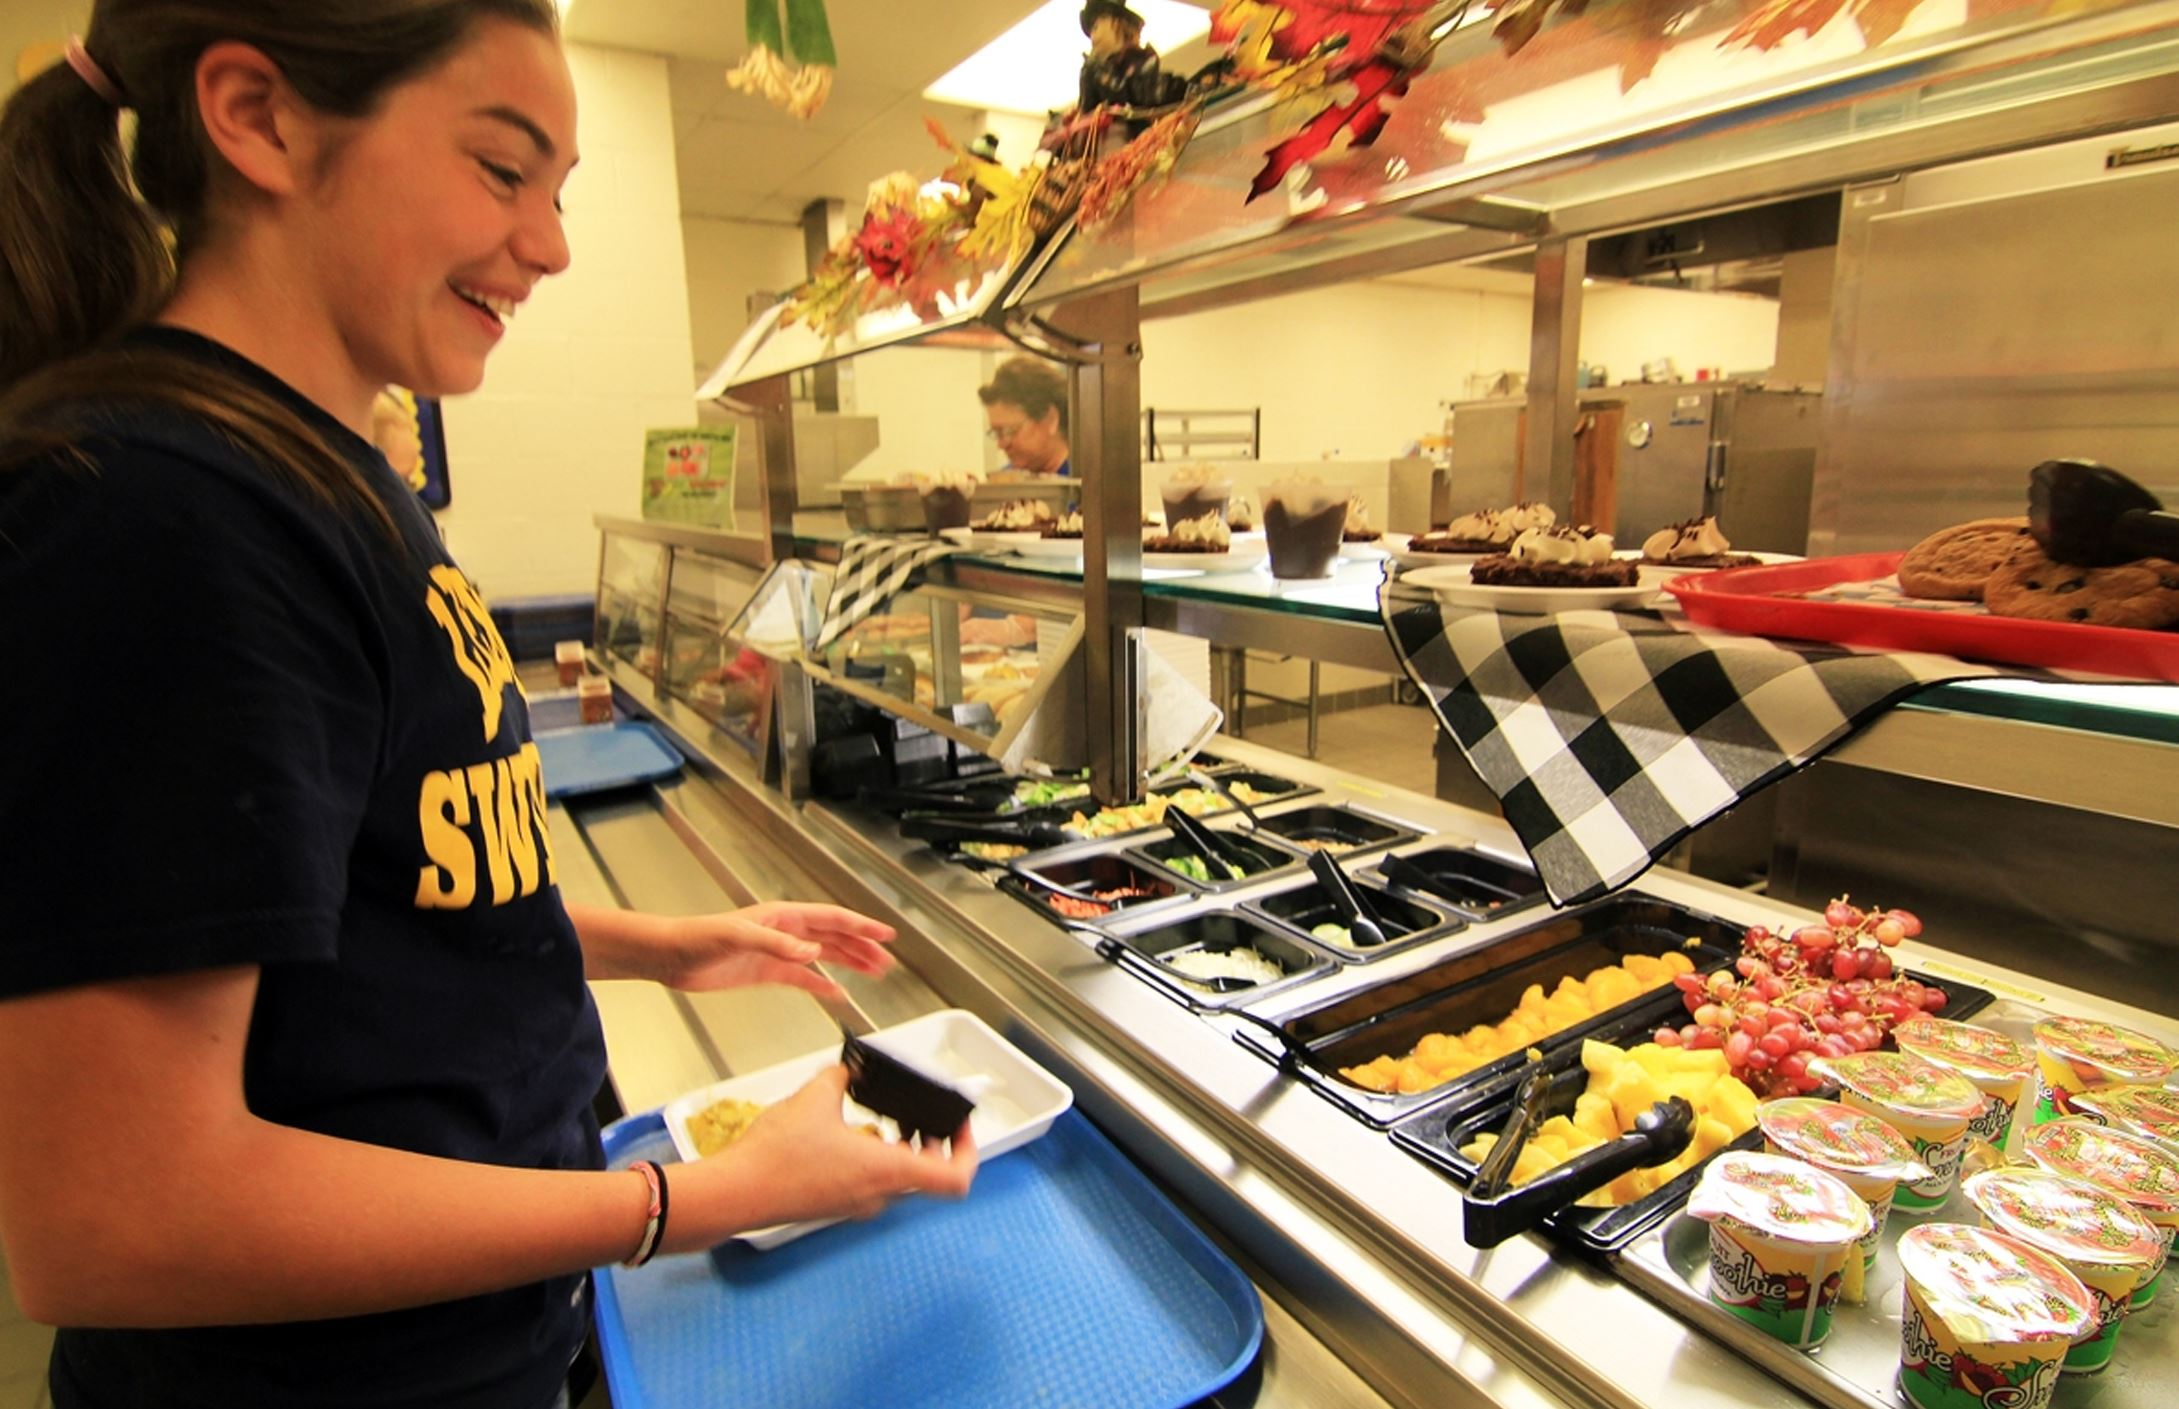 bad cafeteria foodfinal Funny school cafeteria food quotes - 1 whats the point of studying for finals if they are not final we are coming back to school next year read more quotes and sayings about funny school cafeteria food.